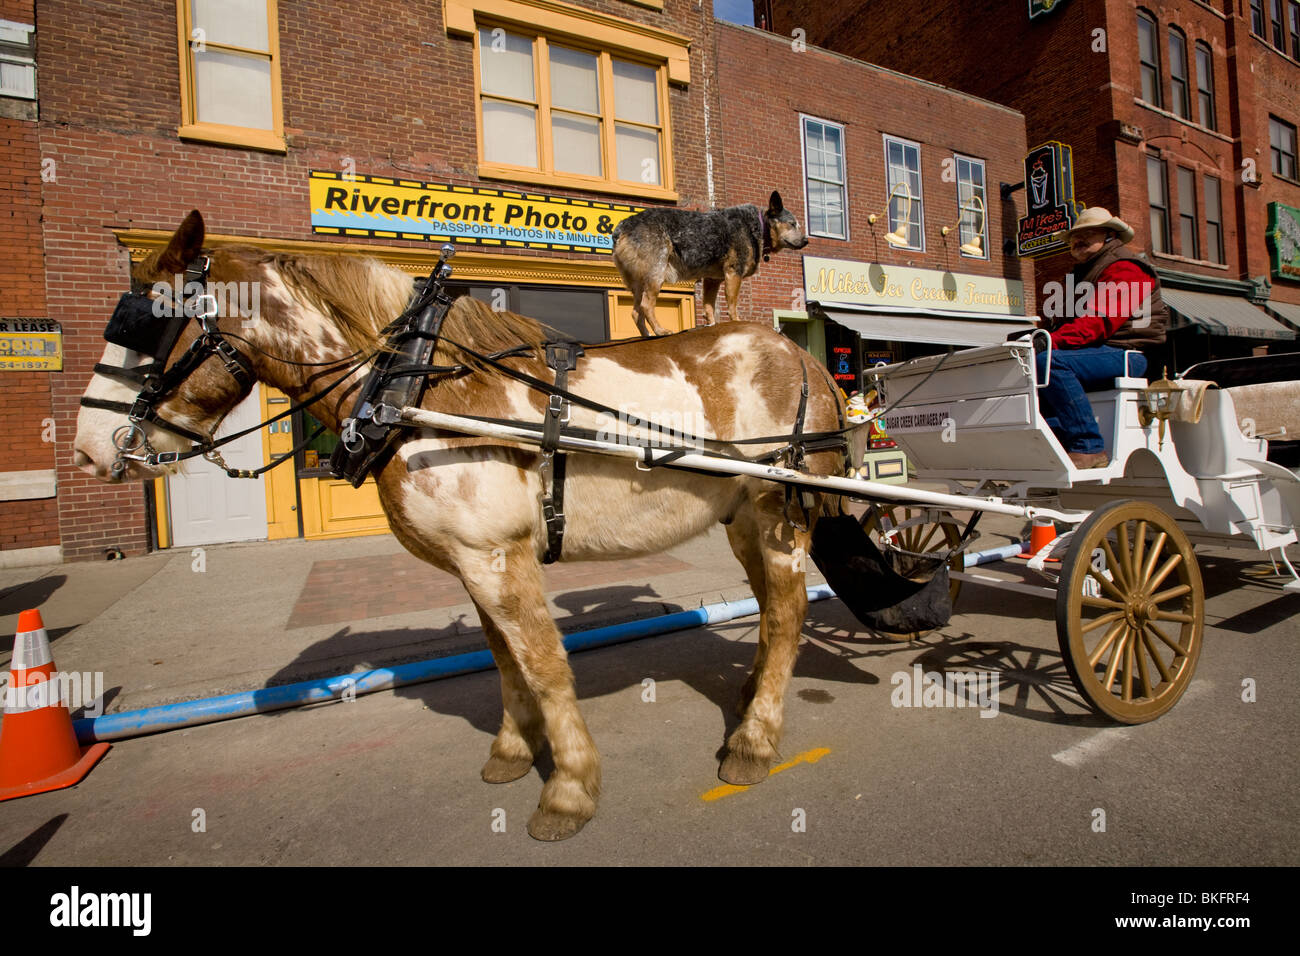 Trained dog on back of carriage horse, Nashville, Tennessee - Stock Image